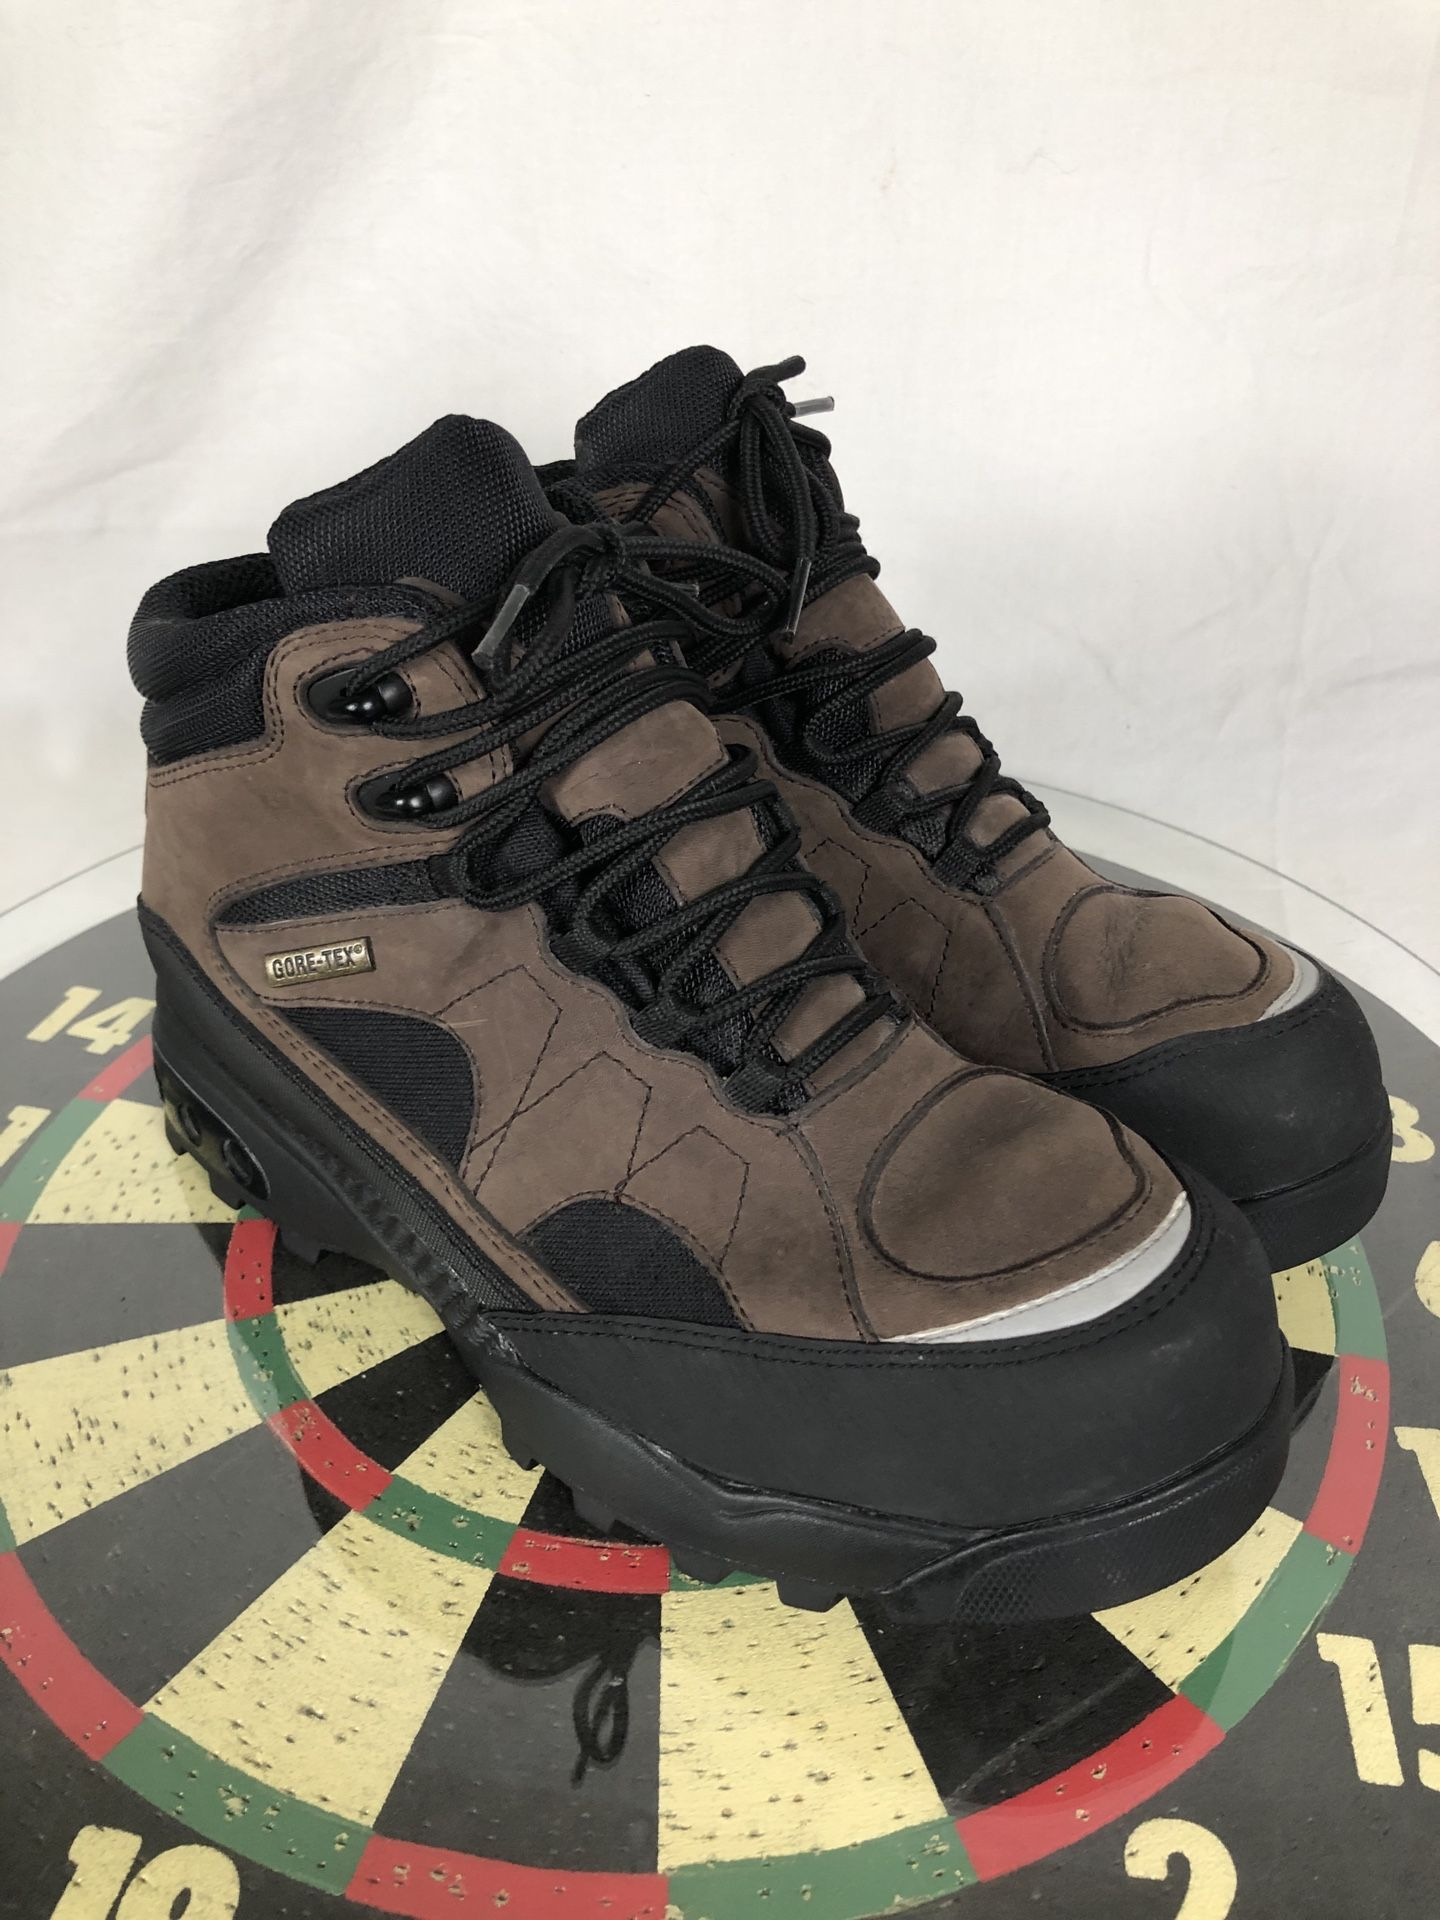 Nike ACG Air Hiking Brown Boots Men 9.5 US Leather Vintage 303830 Camping 2002